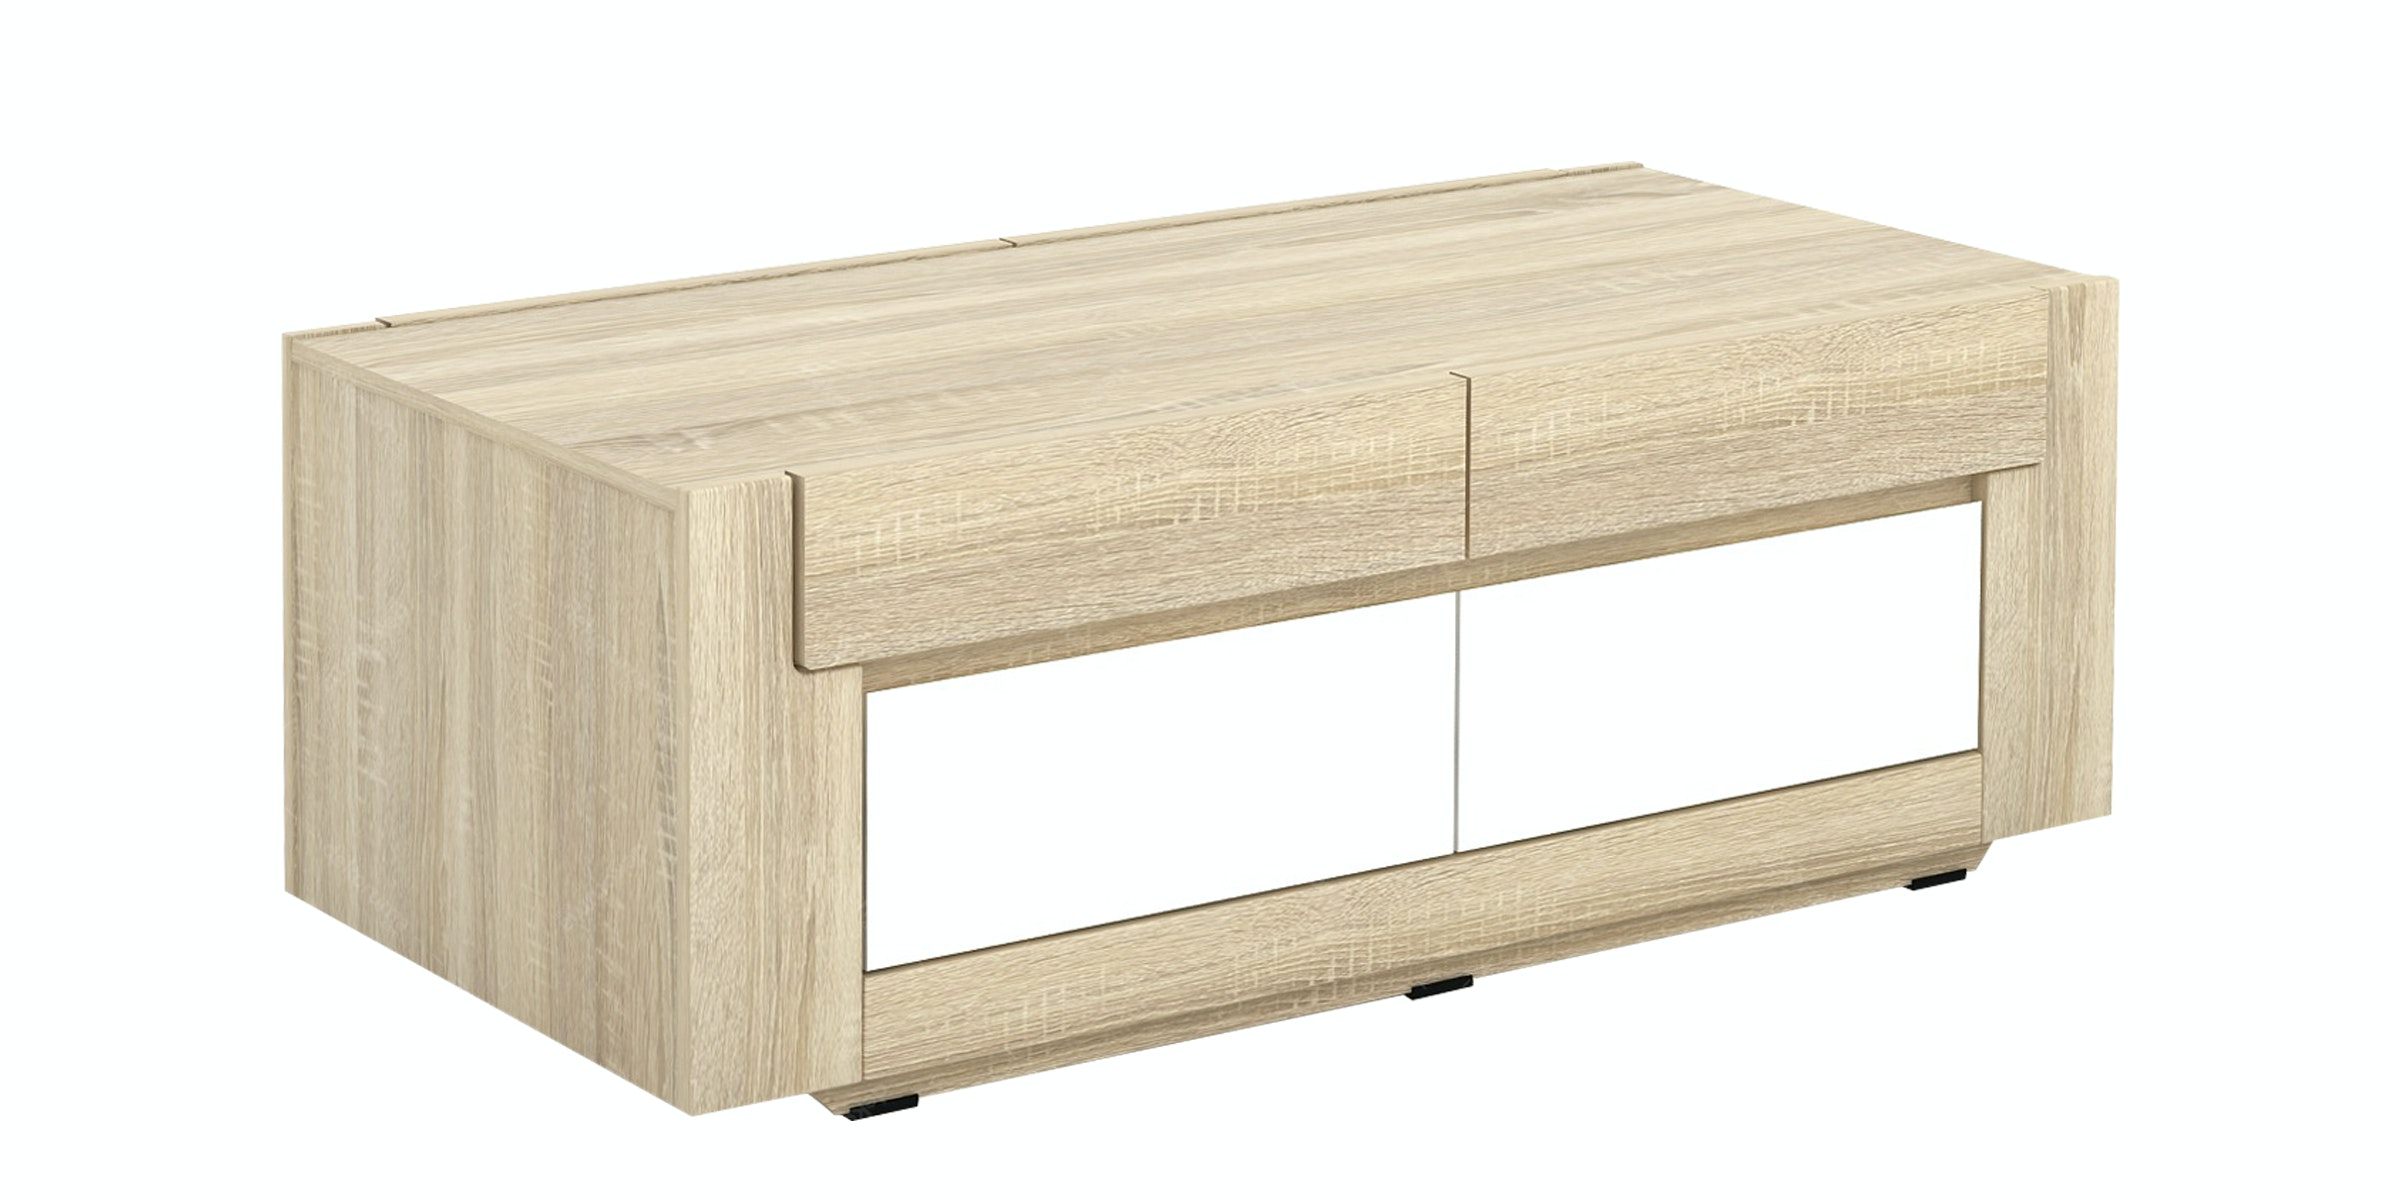 JYSK Coffee Table Elverhoy 124X60X45Cm Sonoma Oak White